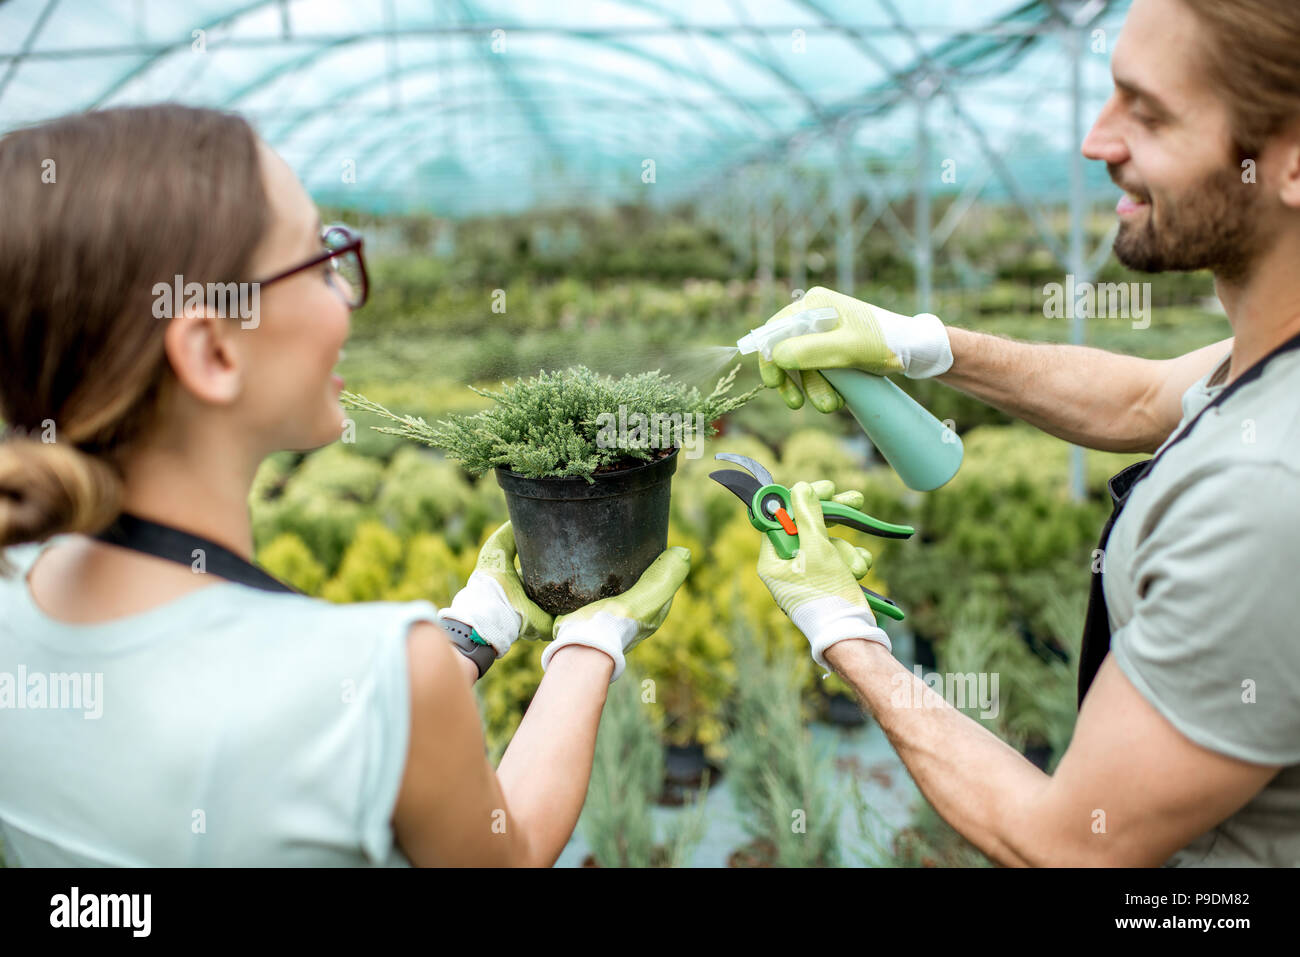 Watering green plant - Stock Image